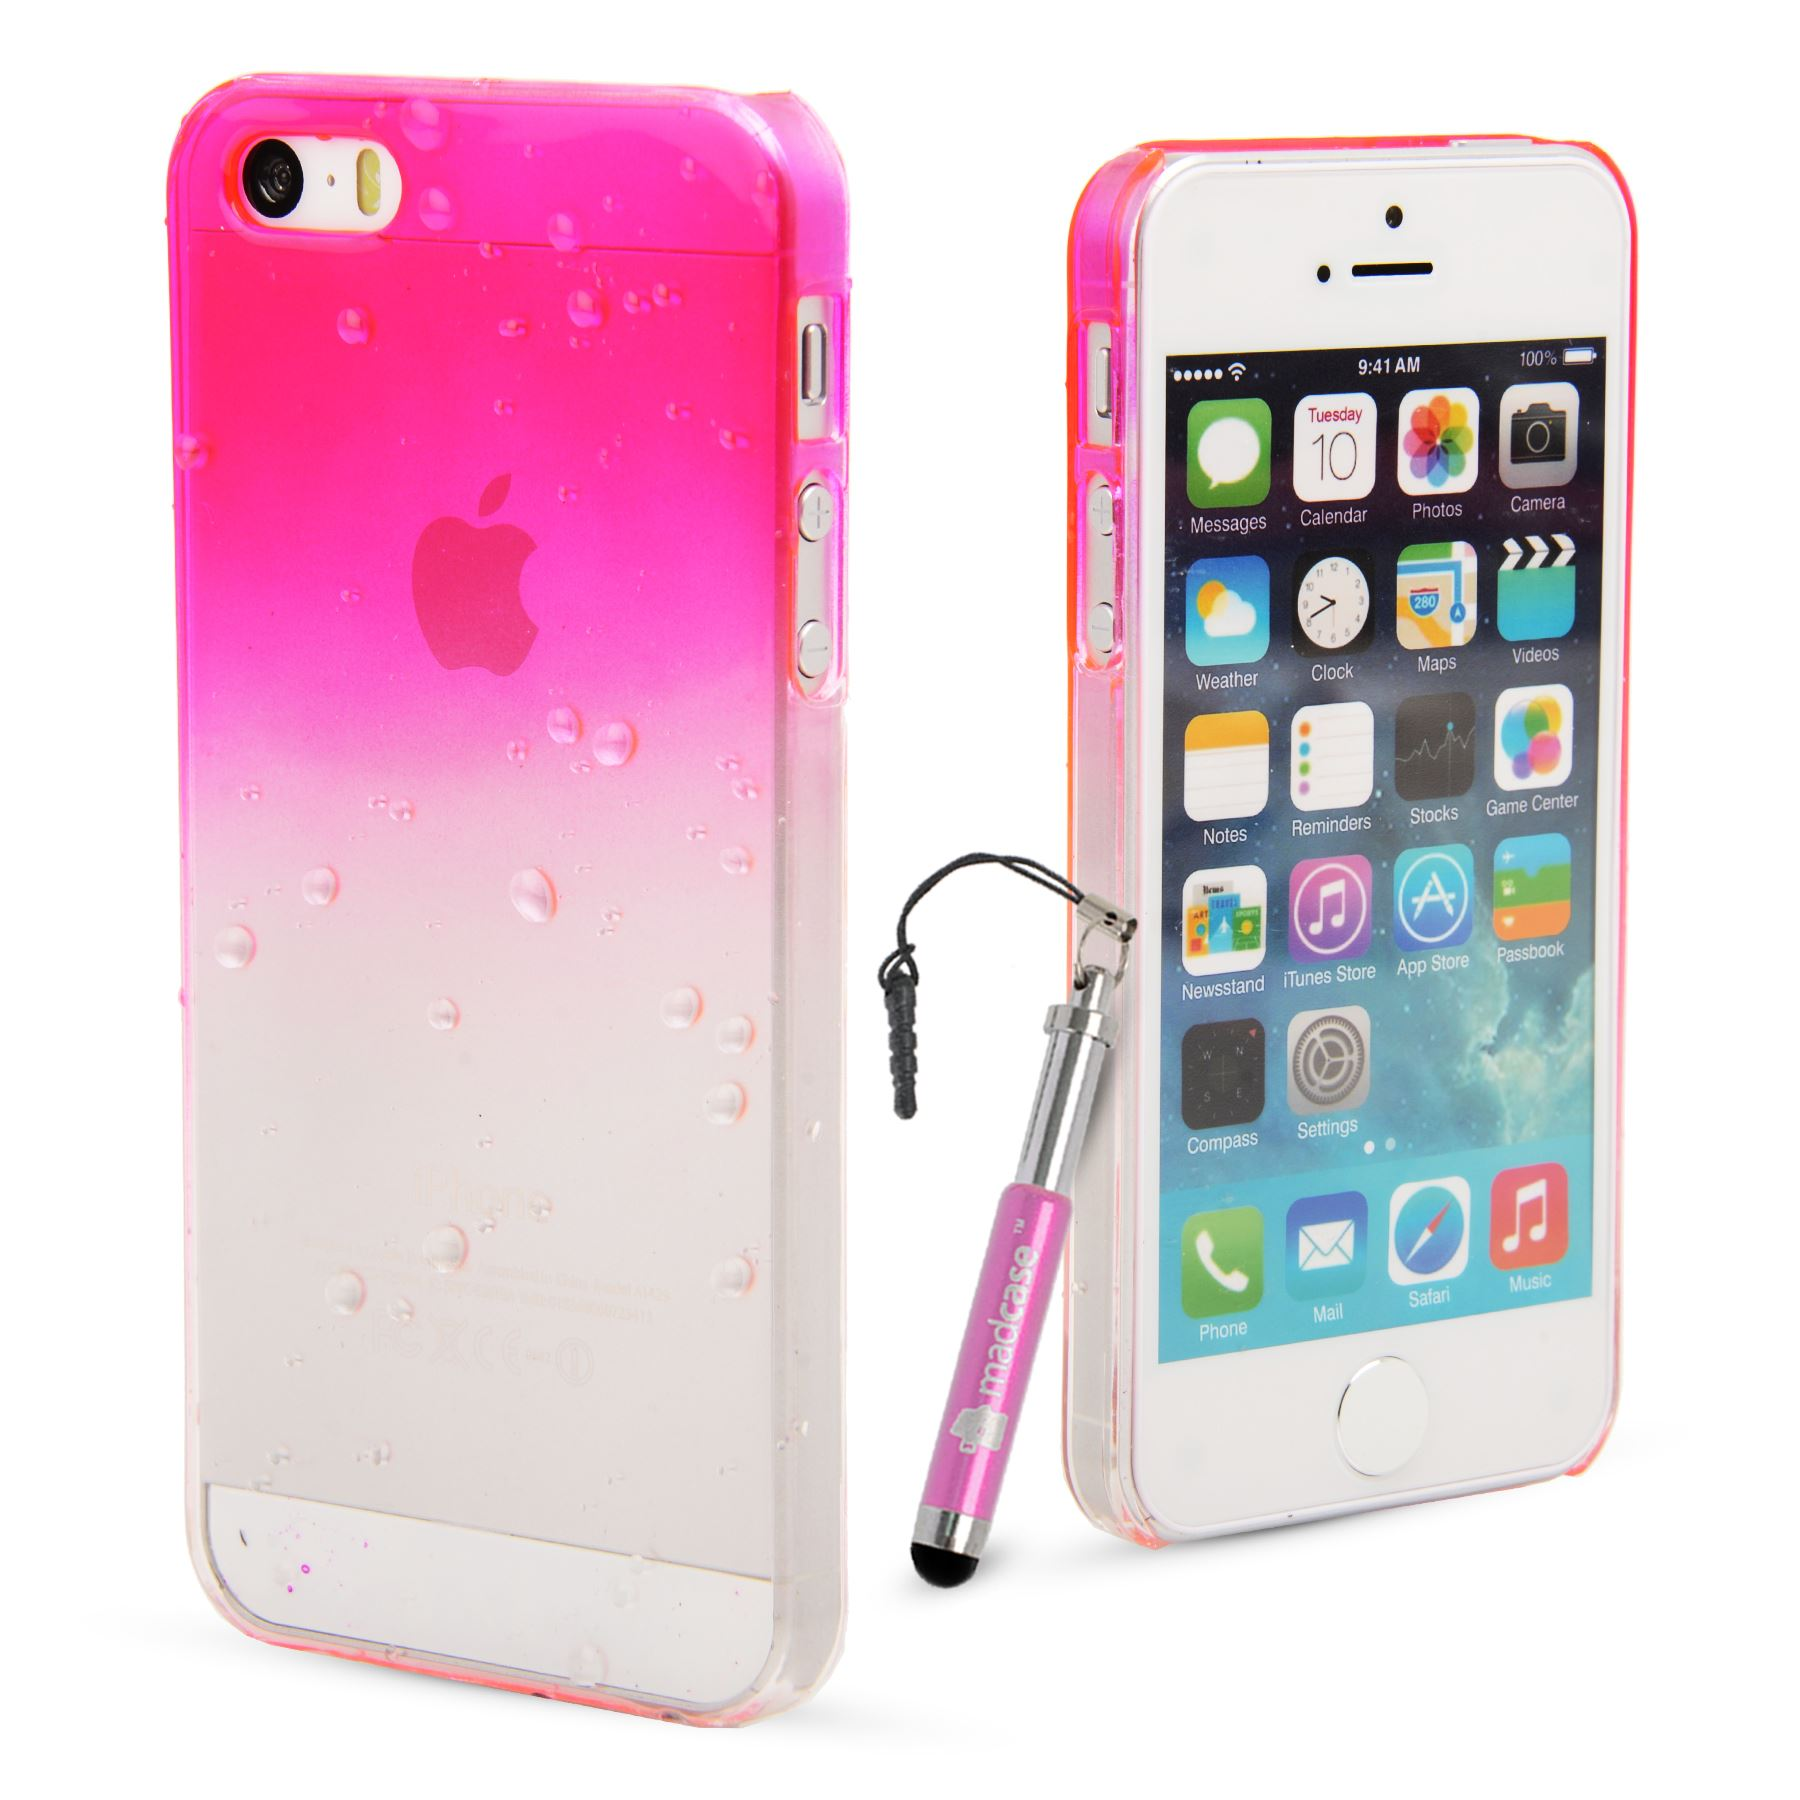 quality design b1341 0dcd0 Details about Slim 3d Clear Rain Water drop Hard Case Cover for Apple  iPhone 5s / 5